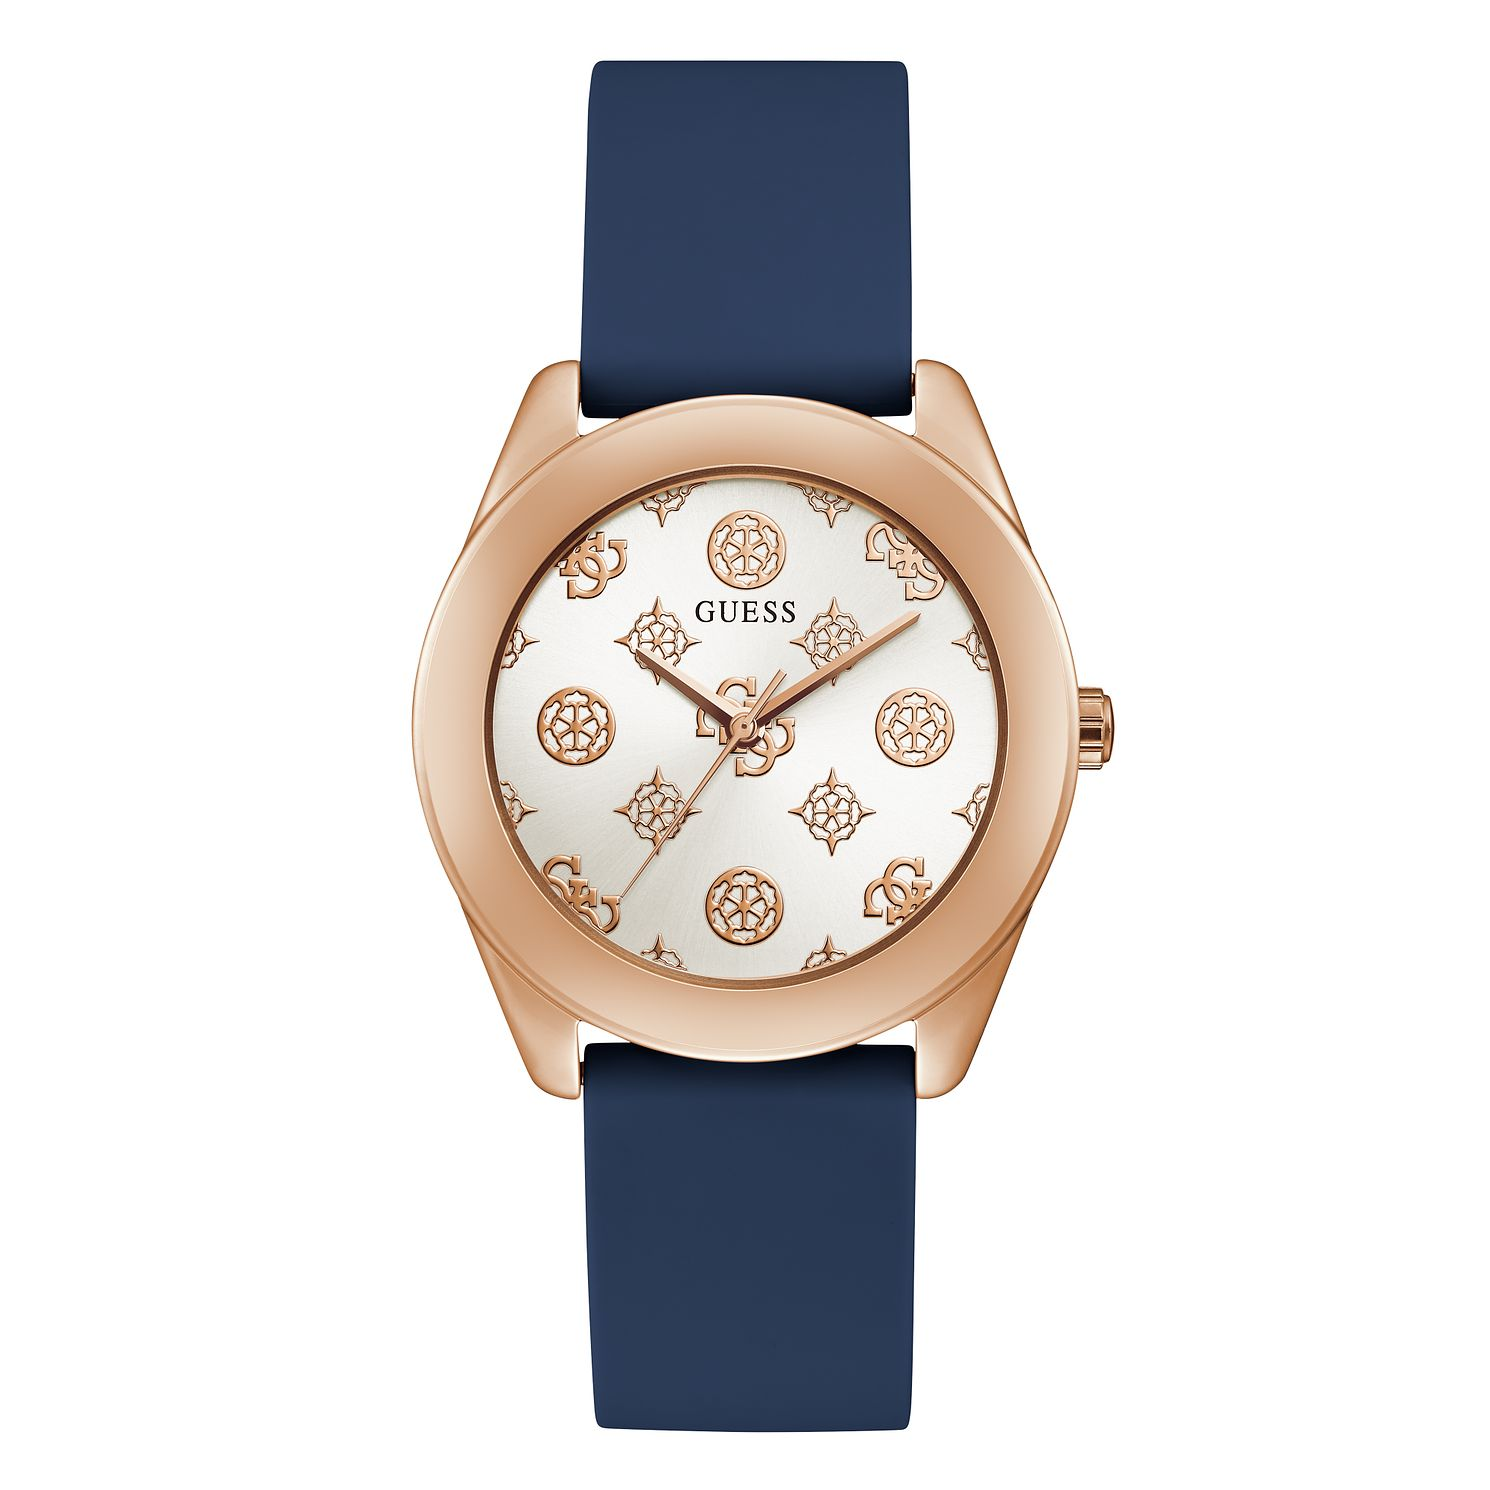 Guess Peony G Ladies' Blue Silicone Strap Watch - Product number 1097180